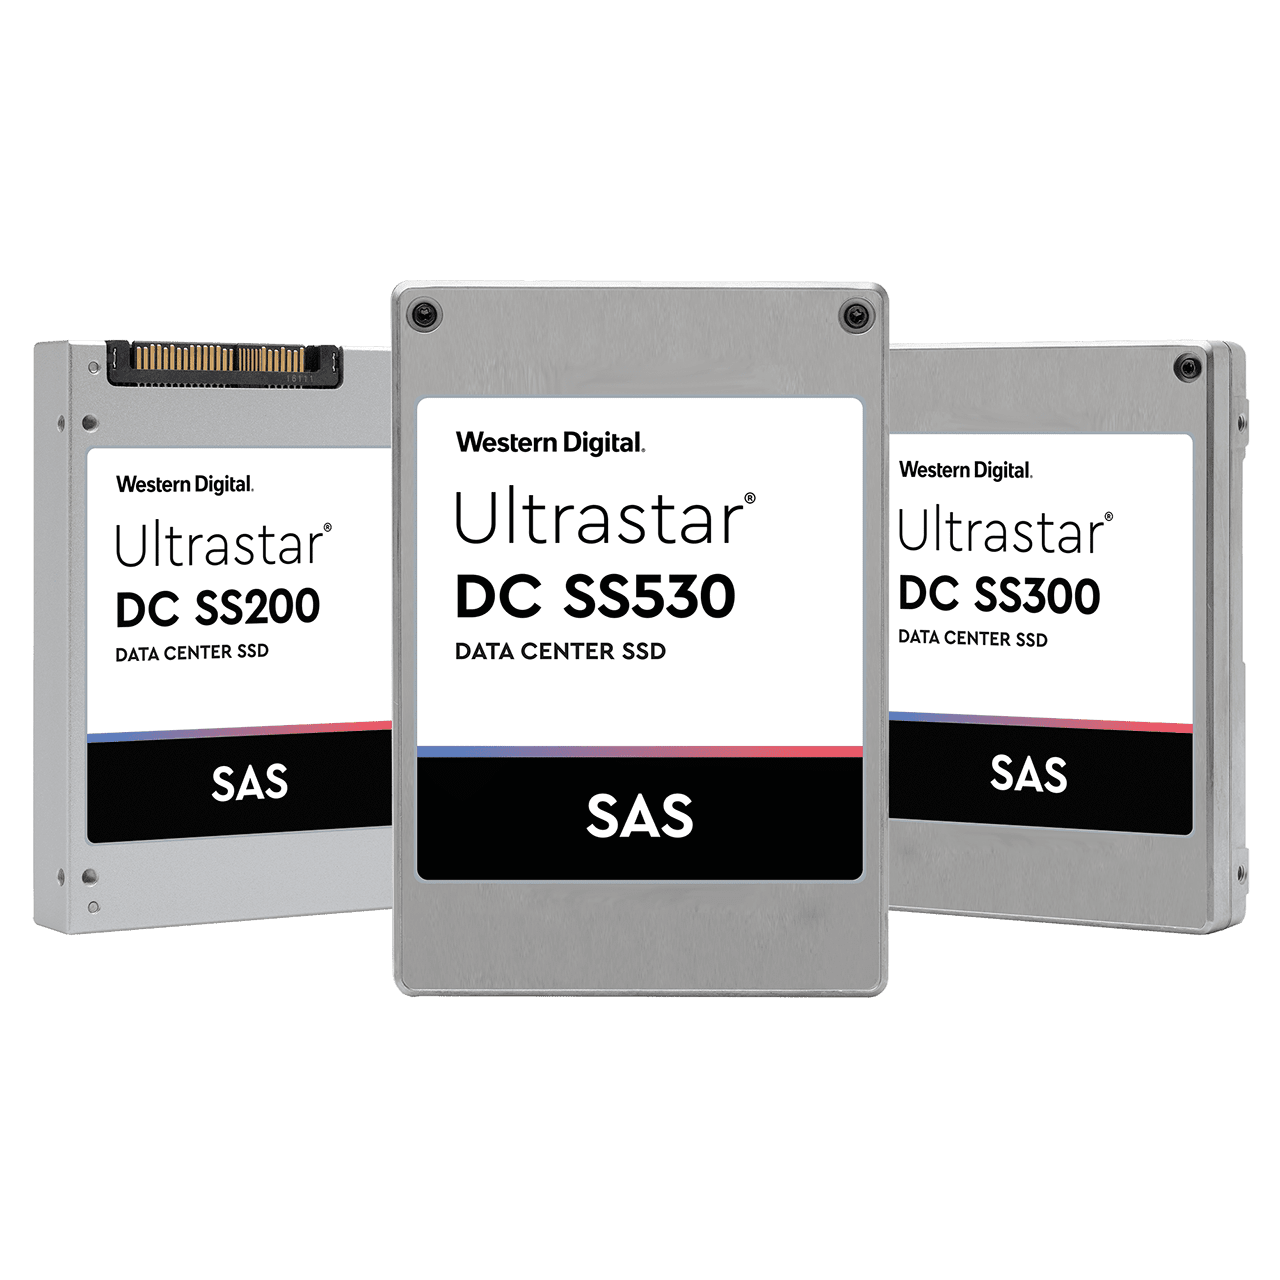 product-hero-image-ultrastar-sas-western-digital-2